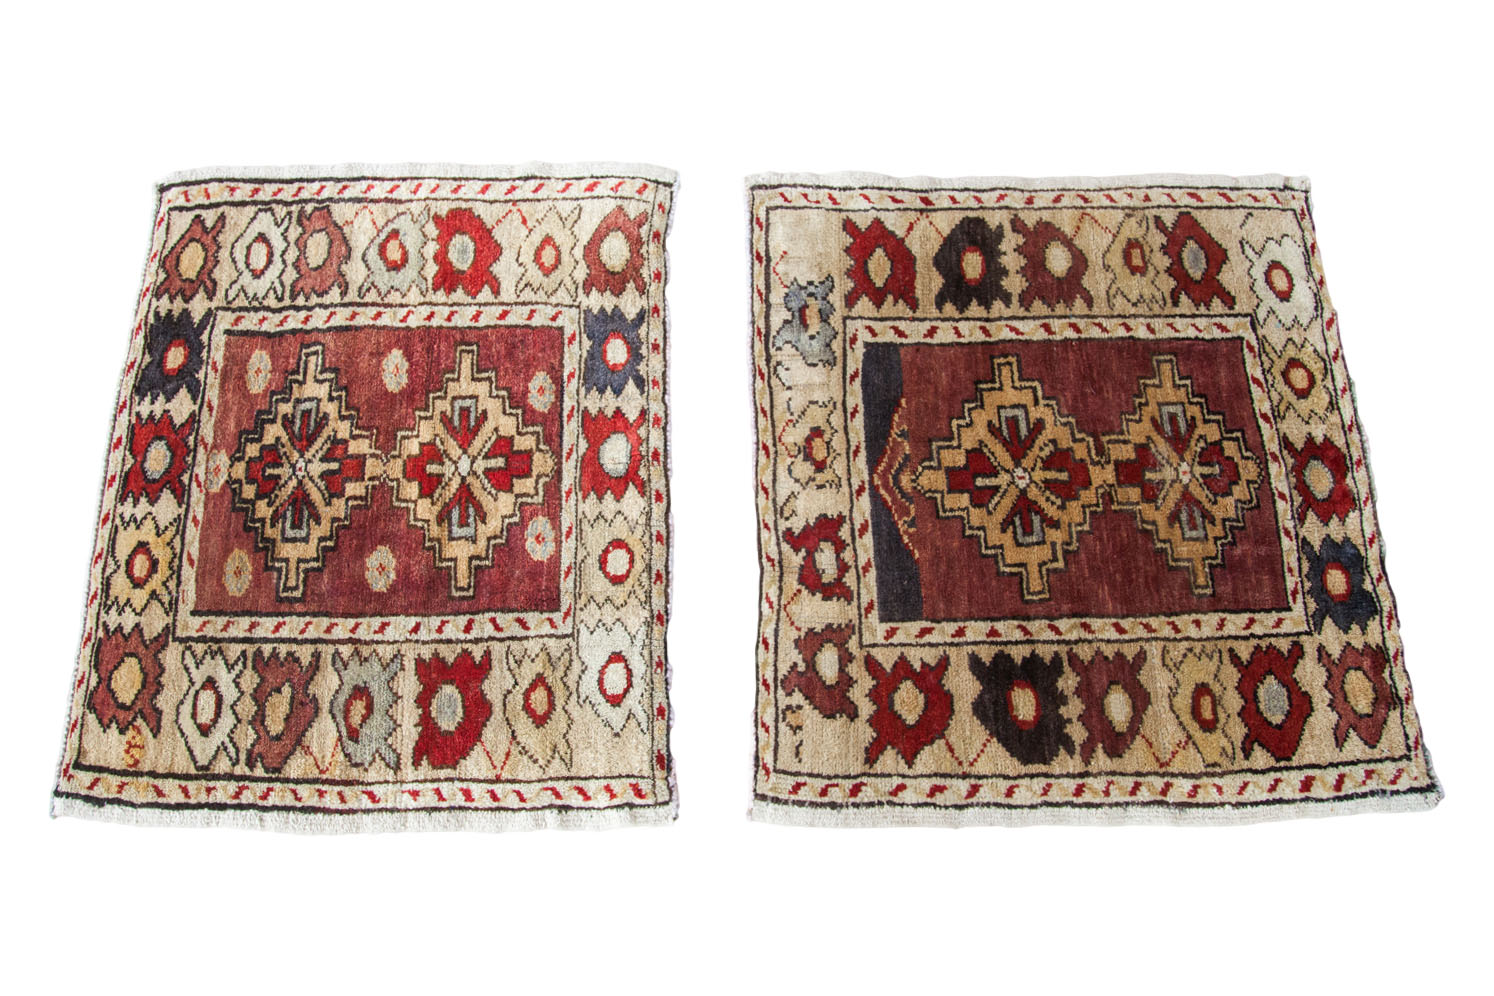 Matching Small Rugs